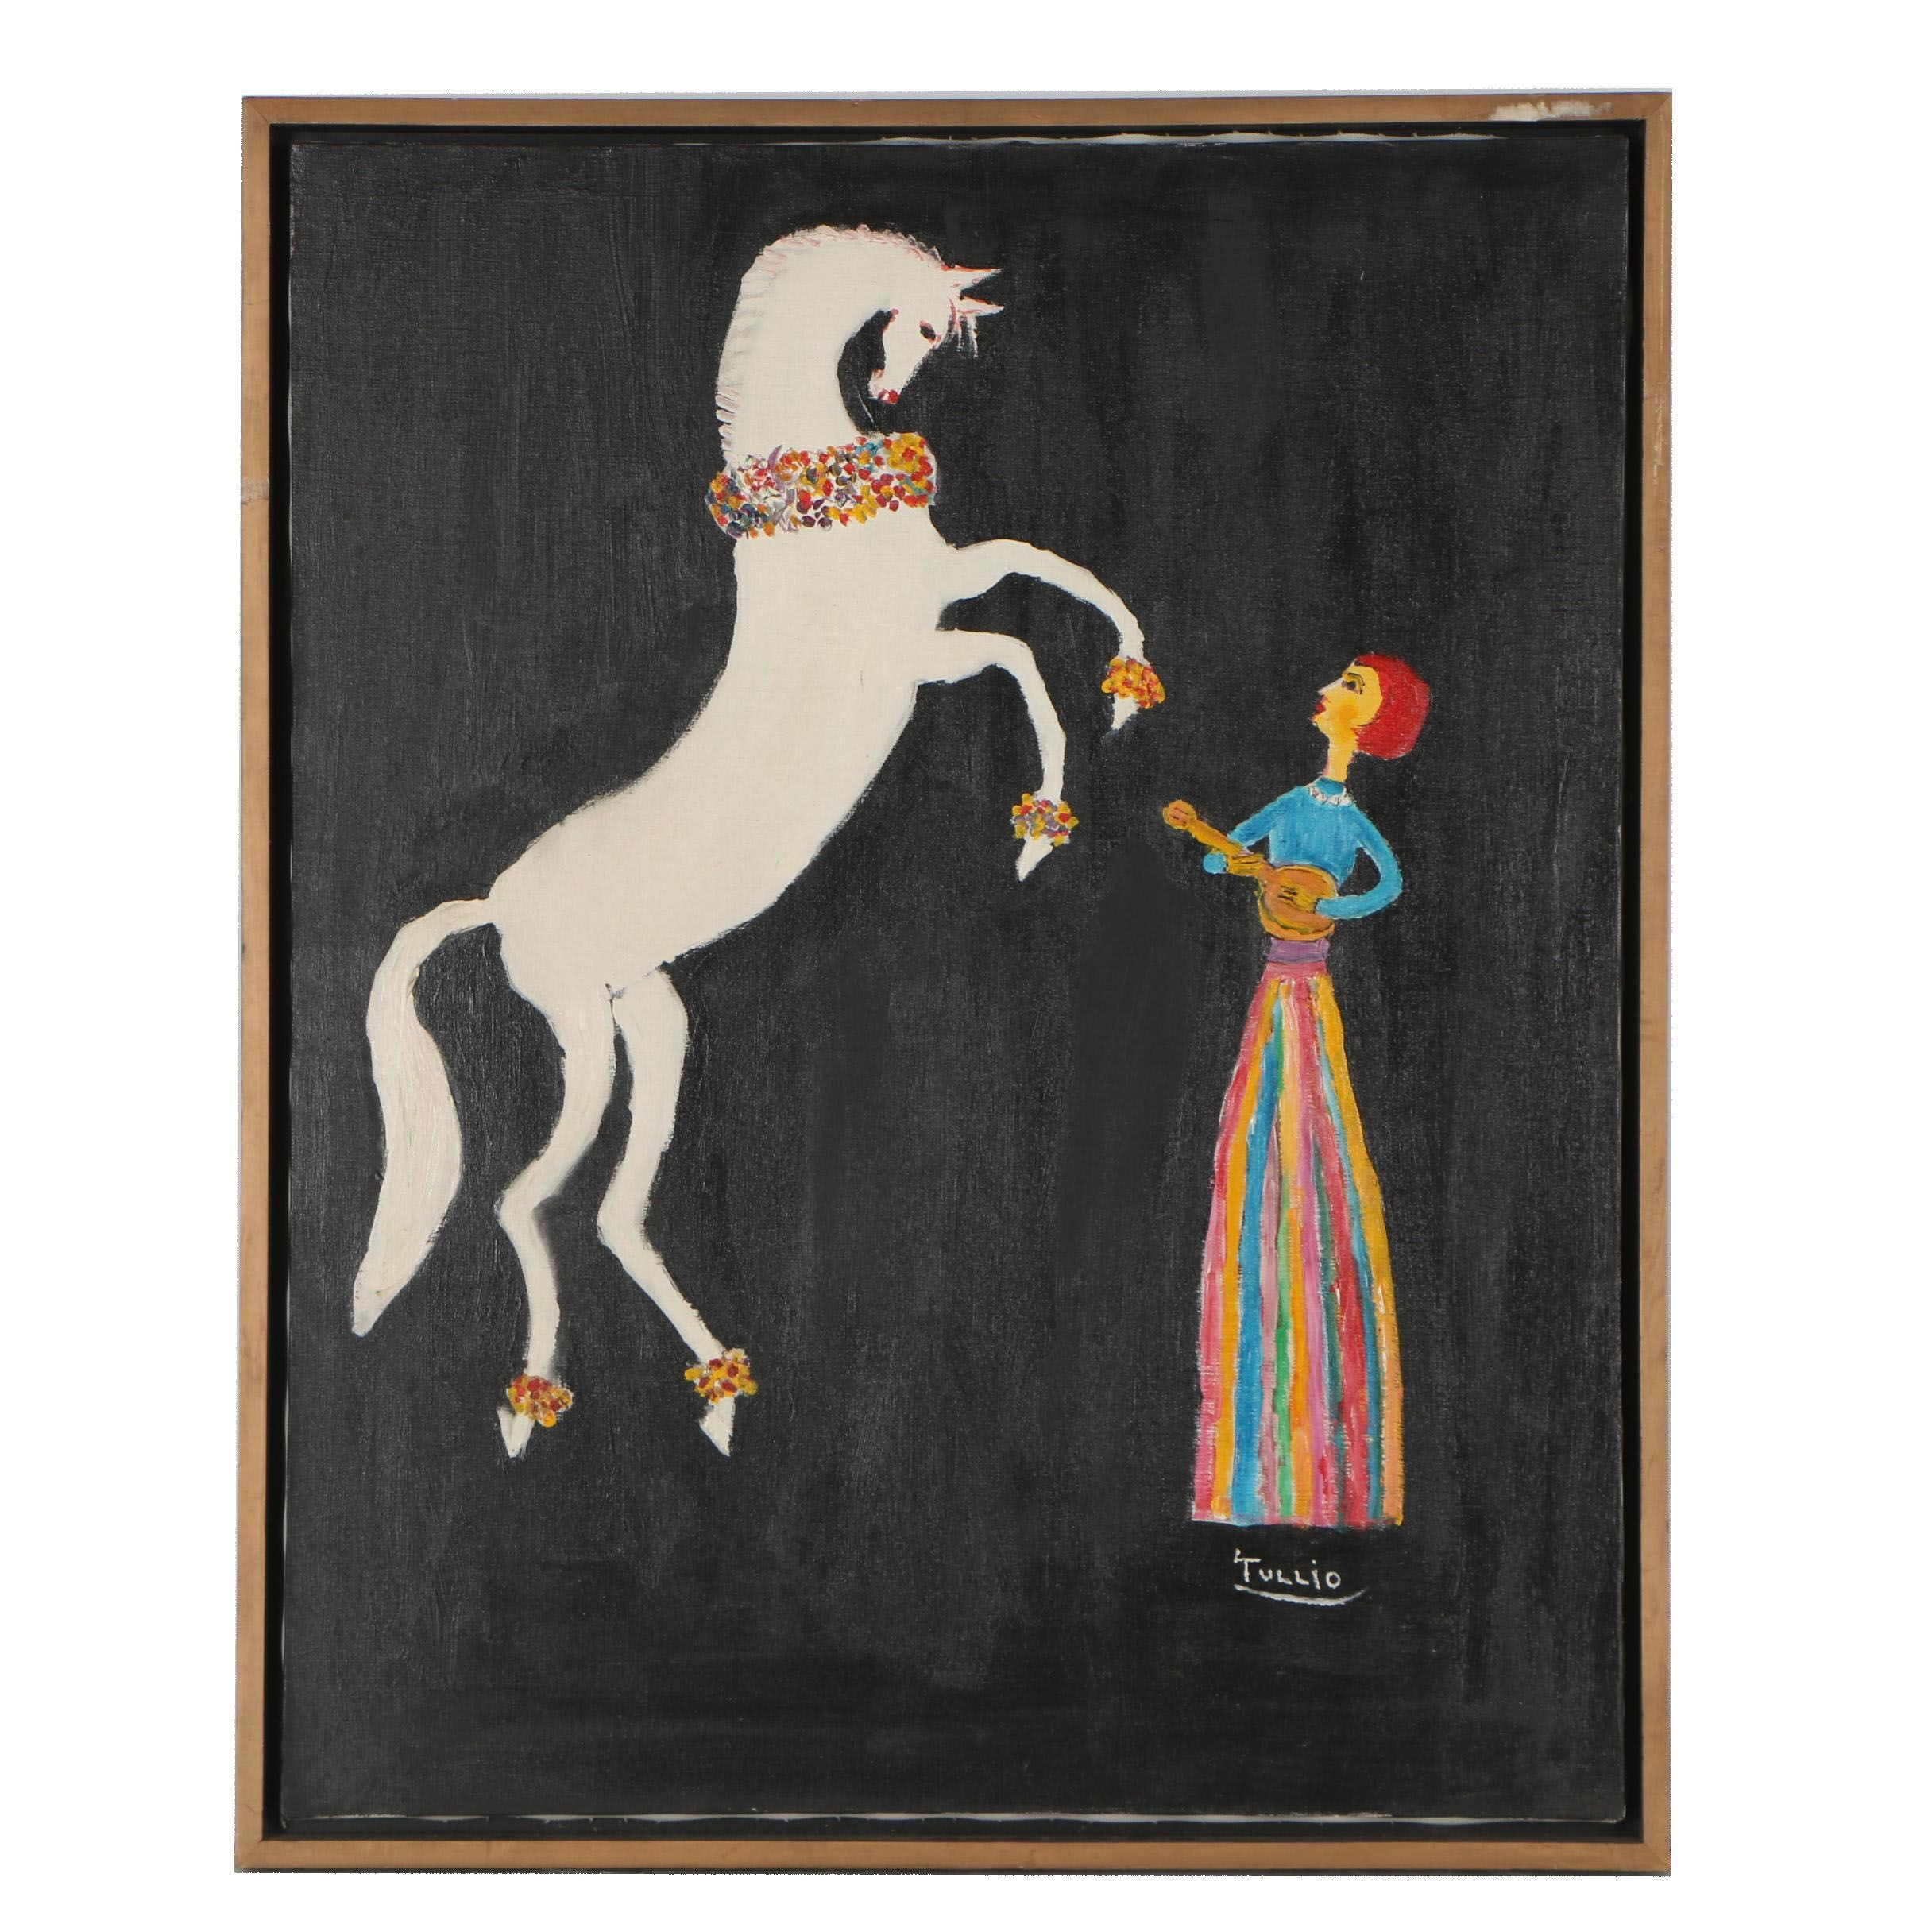 Charles Tullio Oil Painting of Woman with Horse